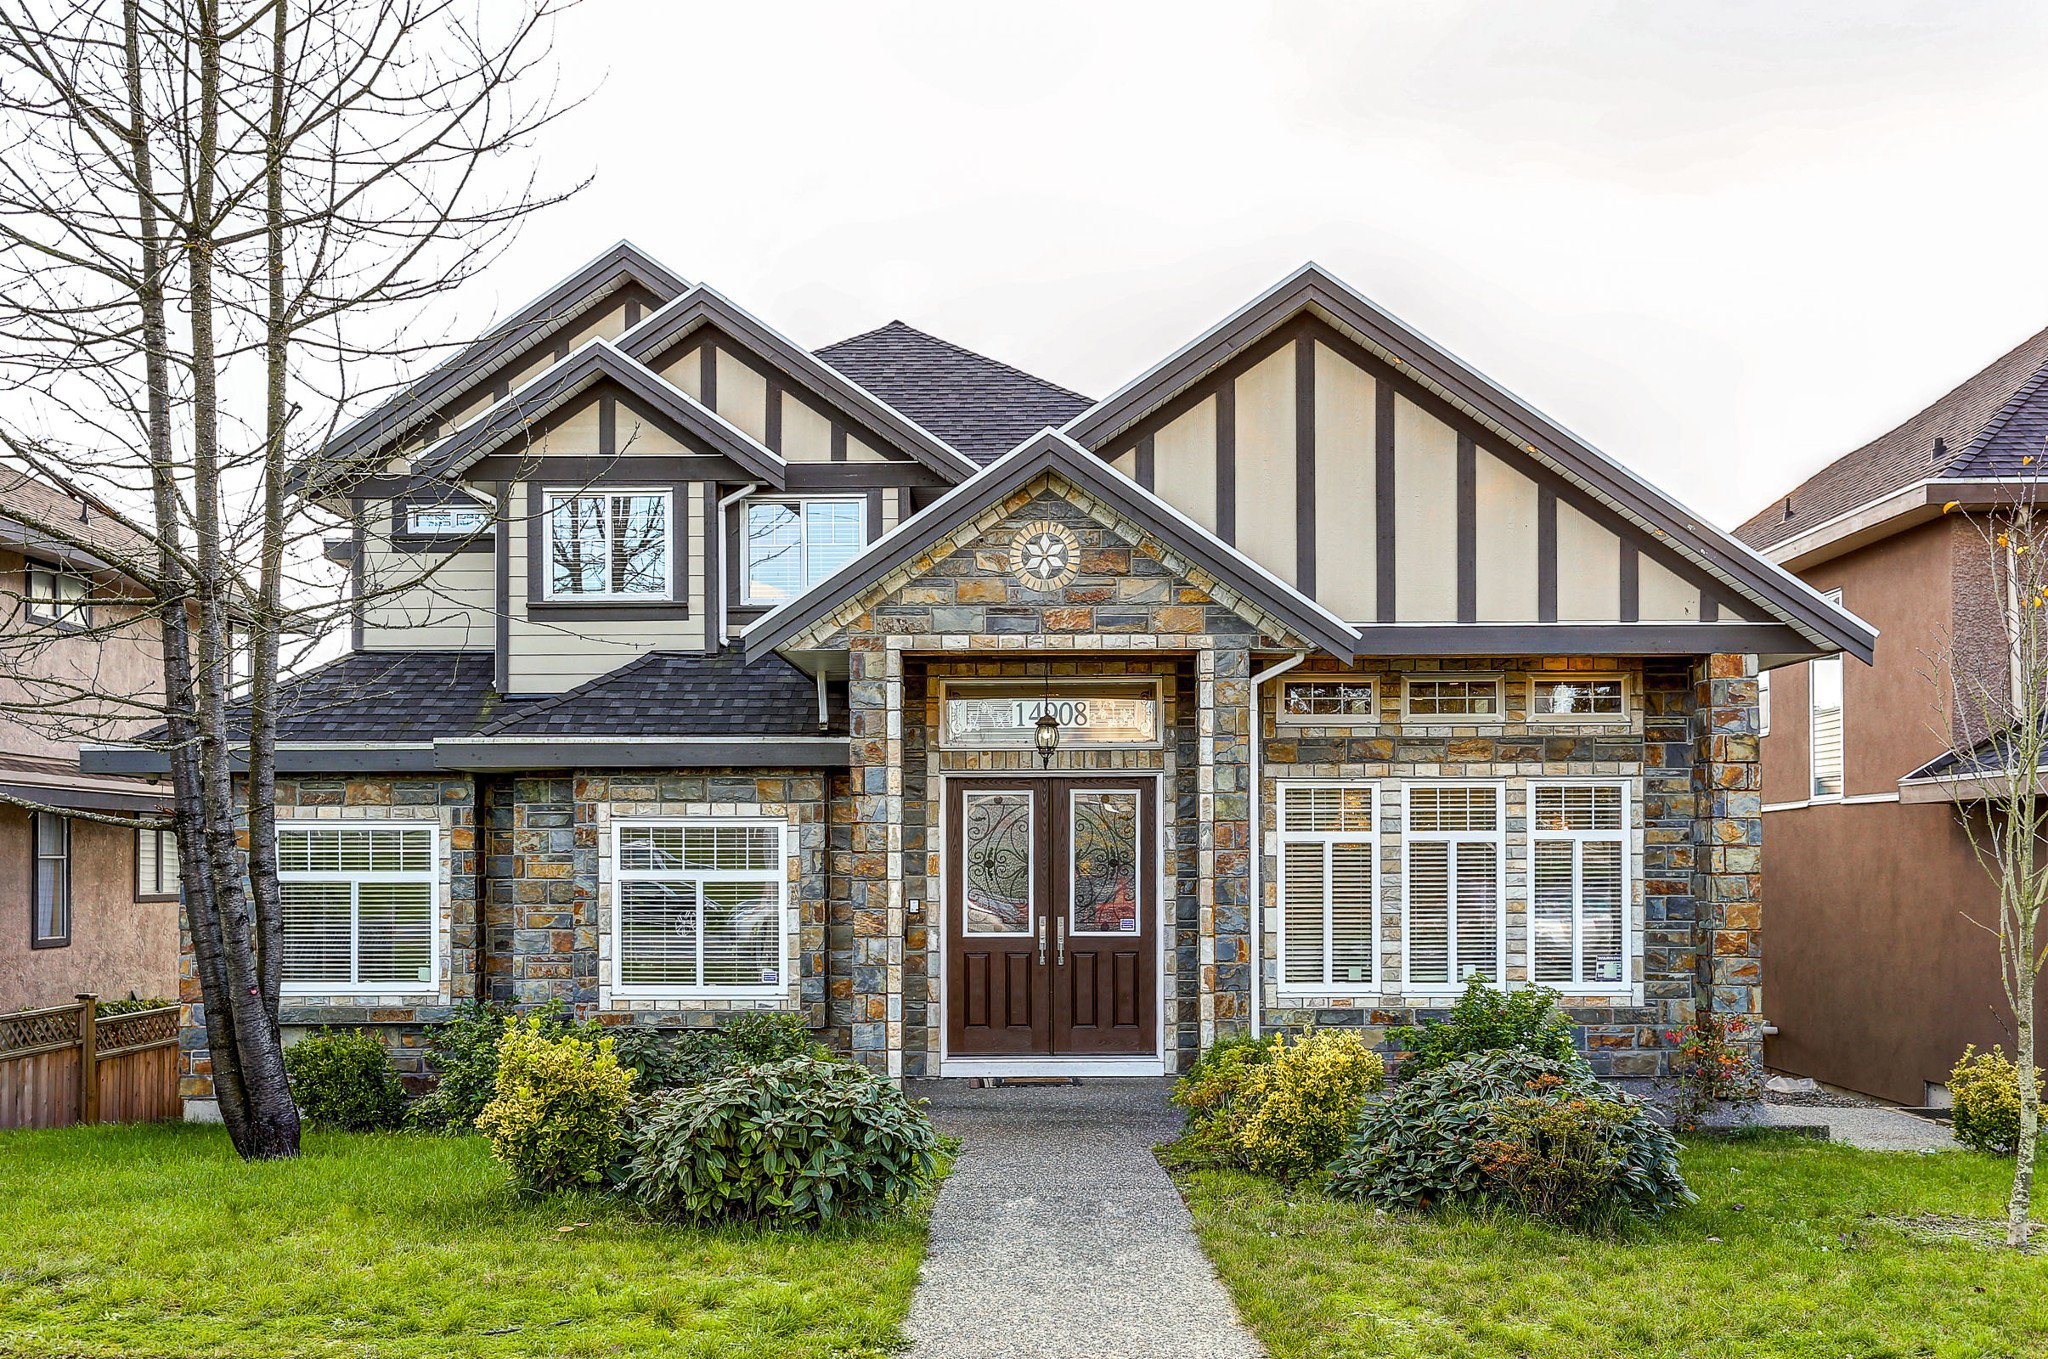 Main Photo: 14908 84 Avenue in Surrey: Bear Creek Green Timbers House for sale : MLS®# R2012788